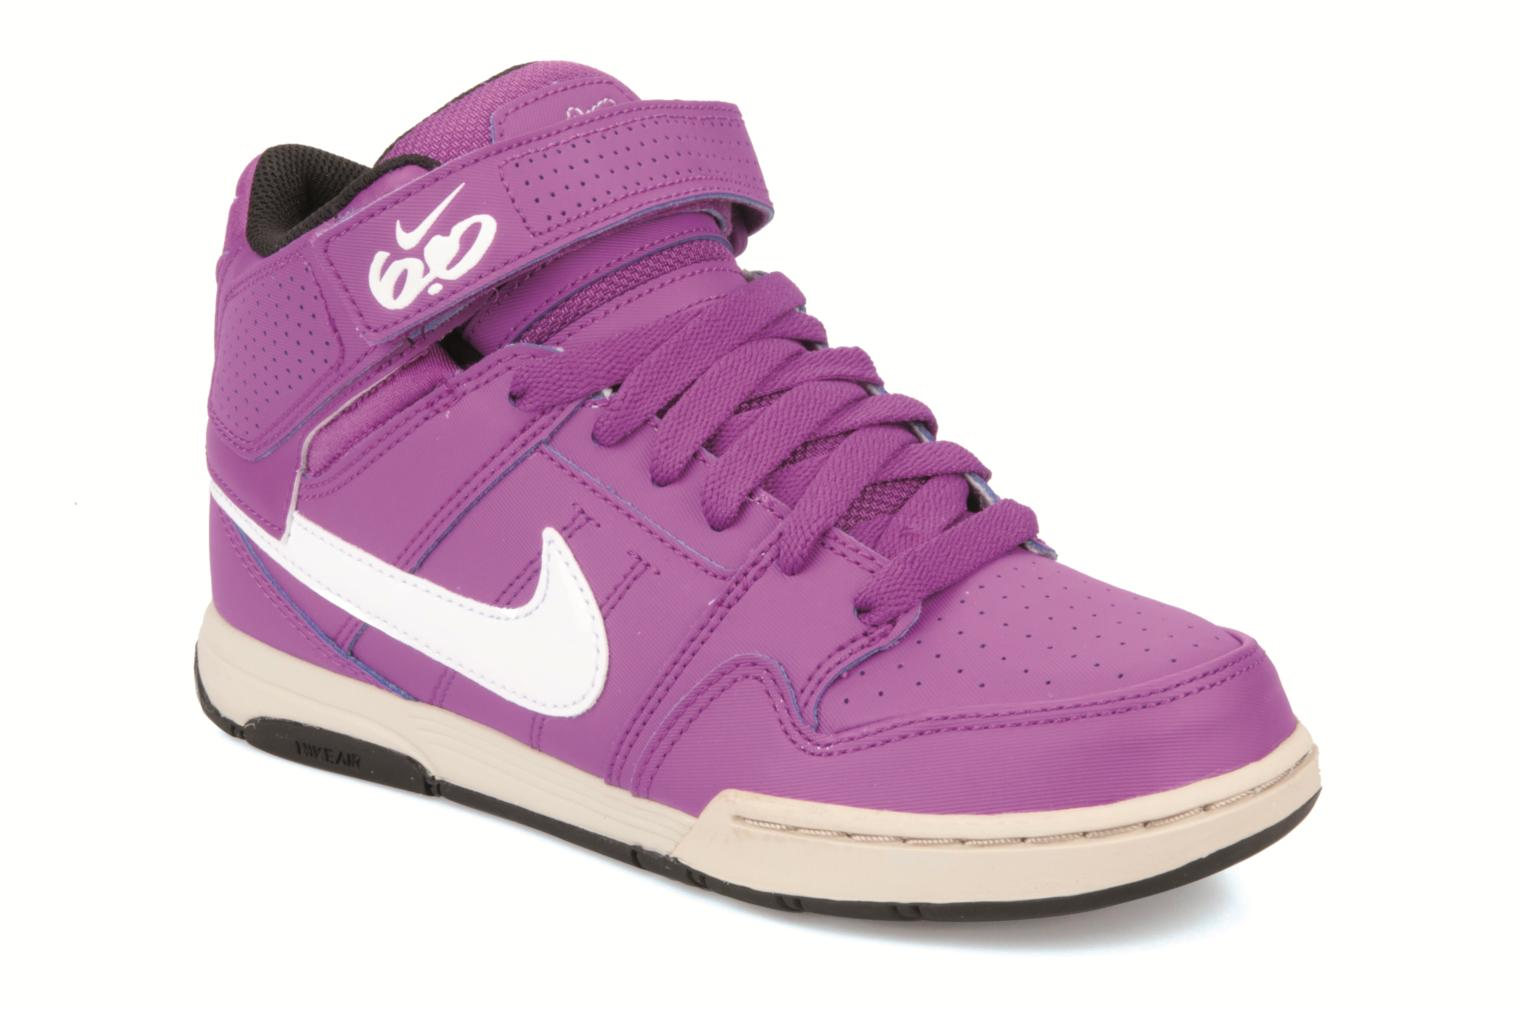 chaussures nike 6.0